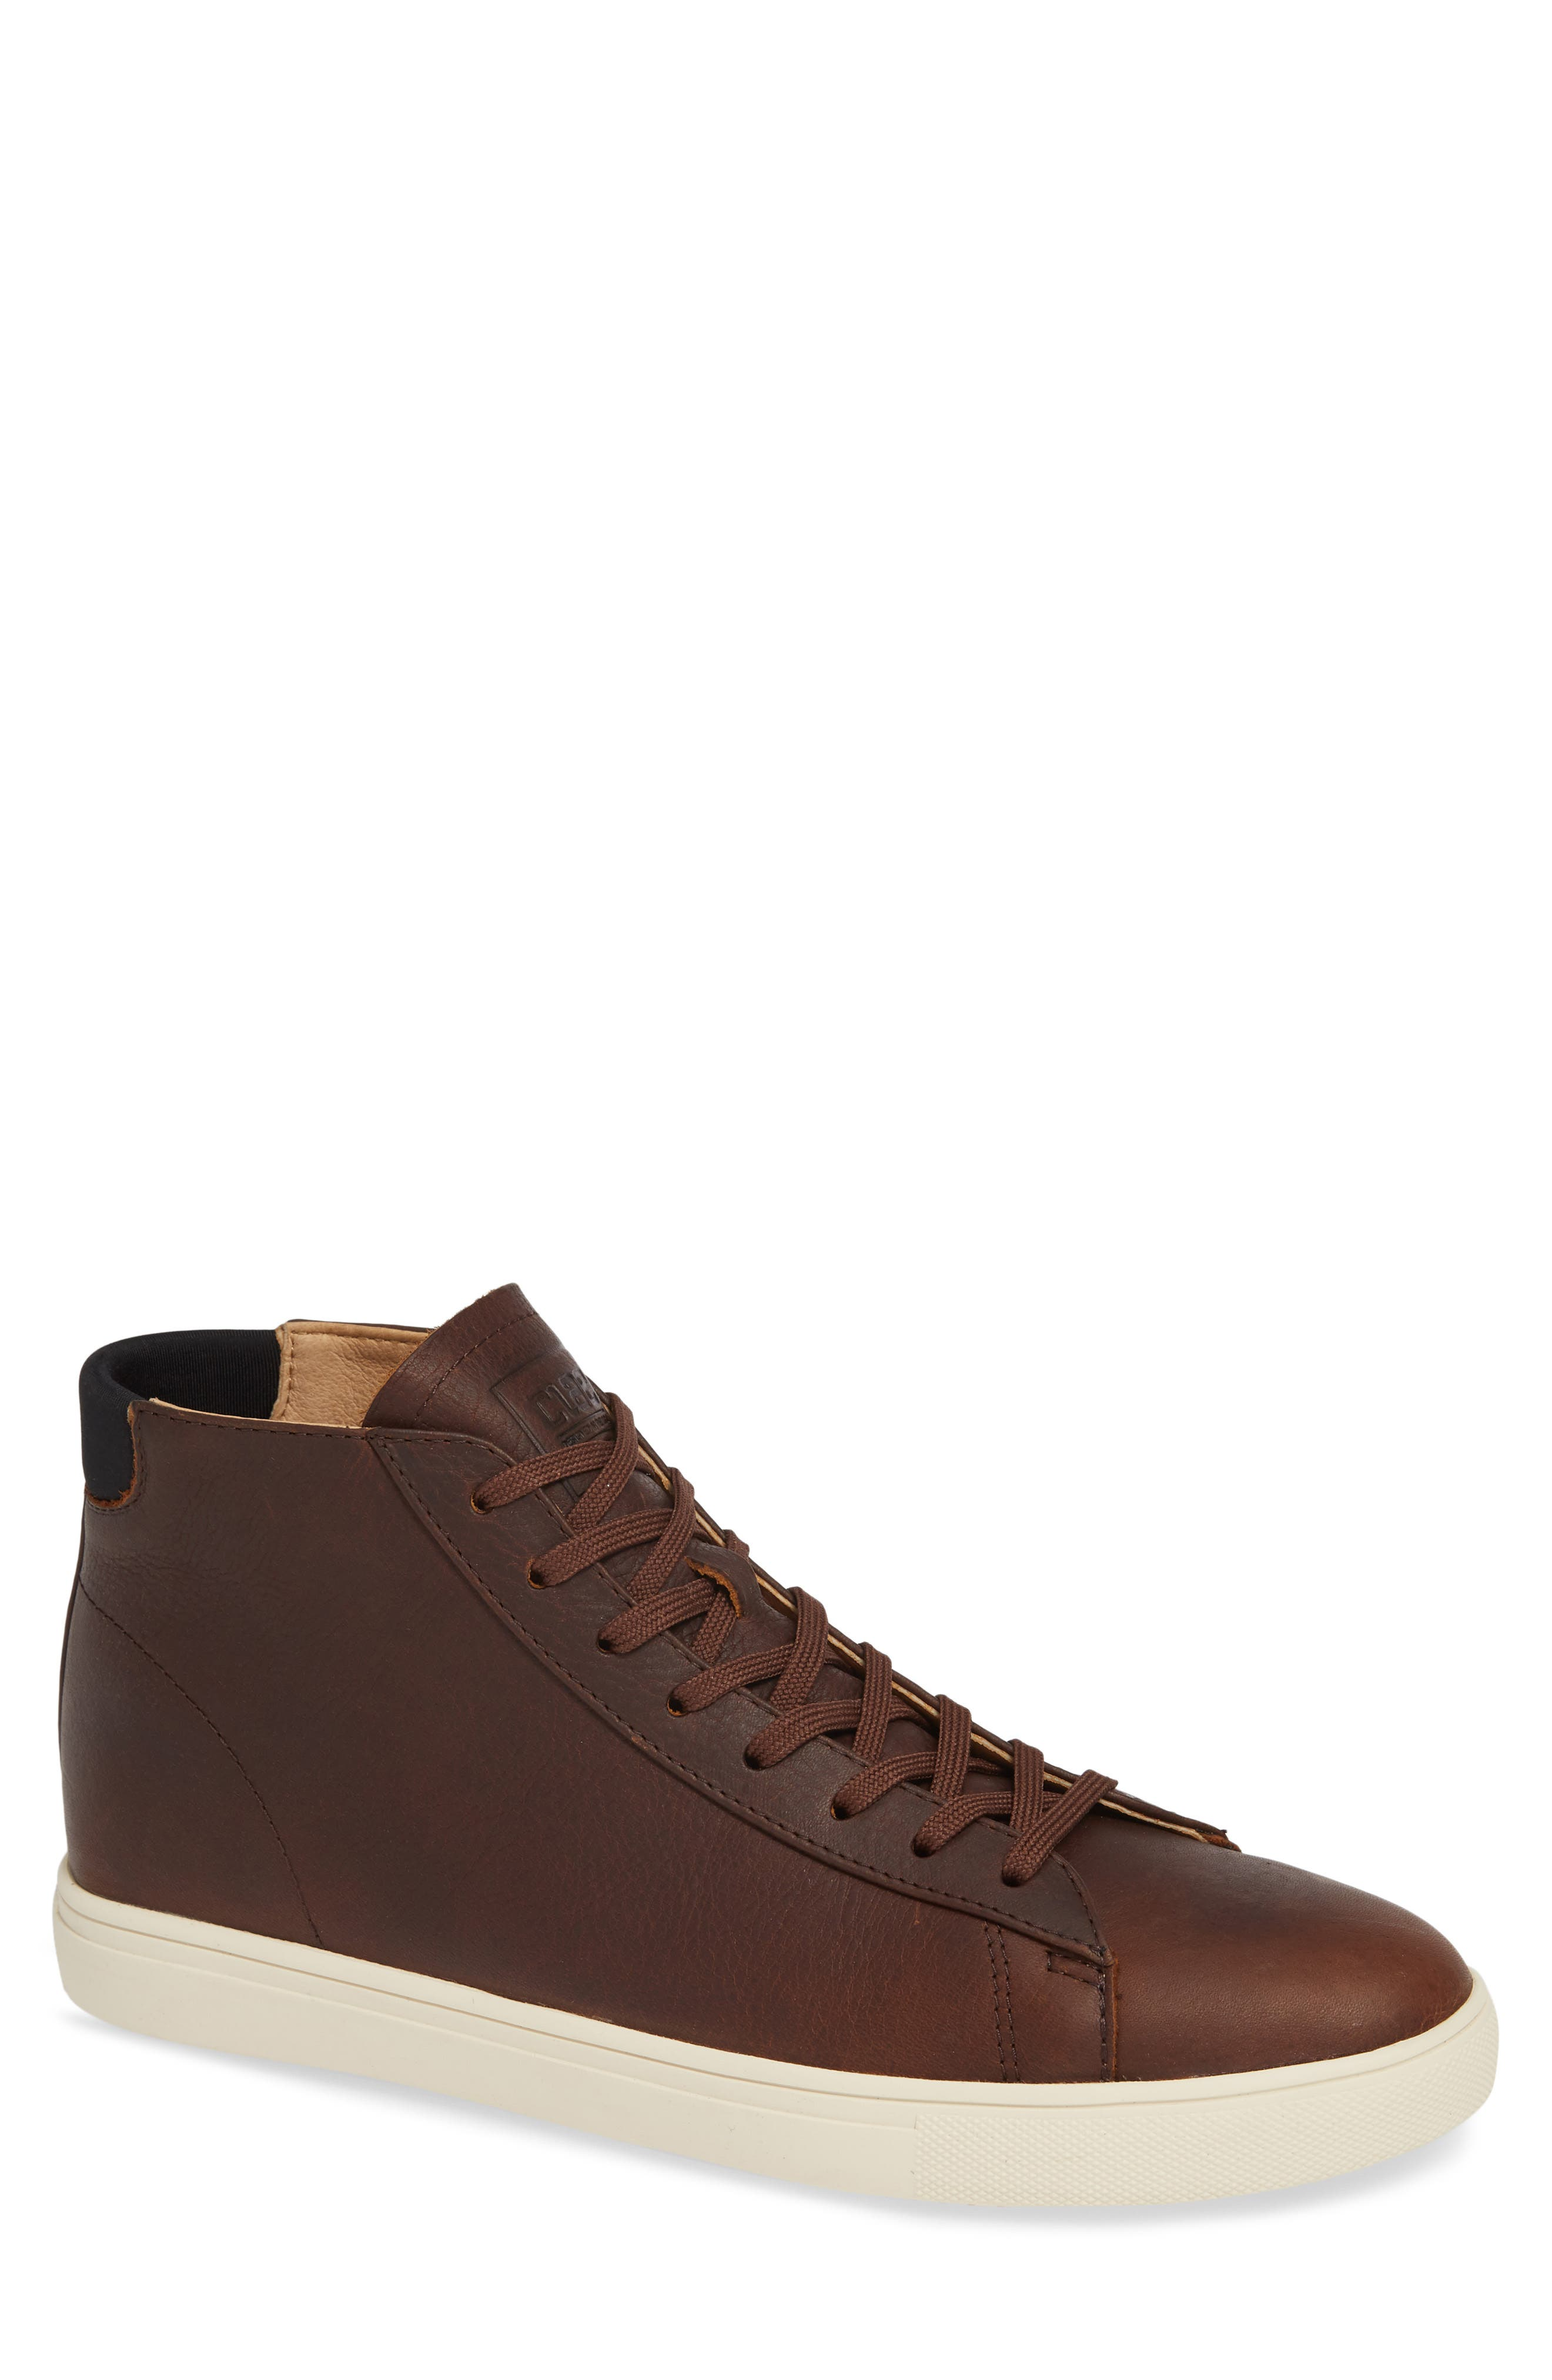 'Bradley Mid' Sneaker,                             Main thumbnail 1, color,                             COCOA LEATHER